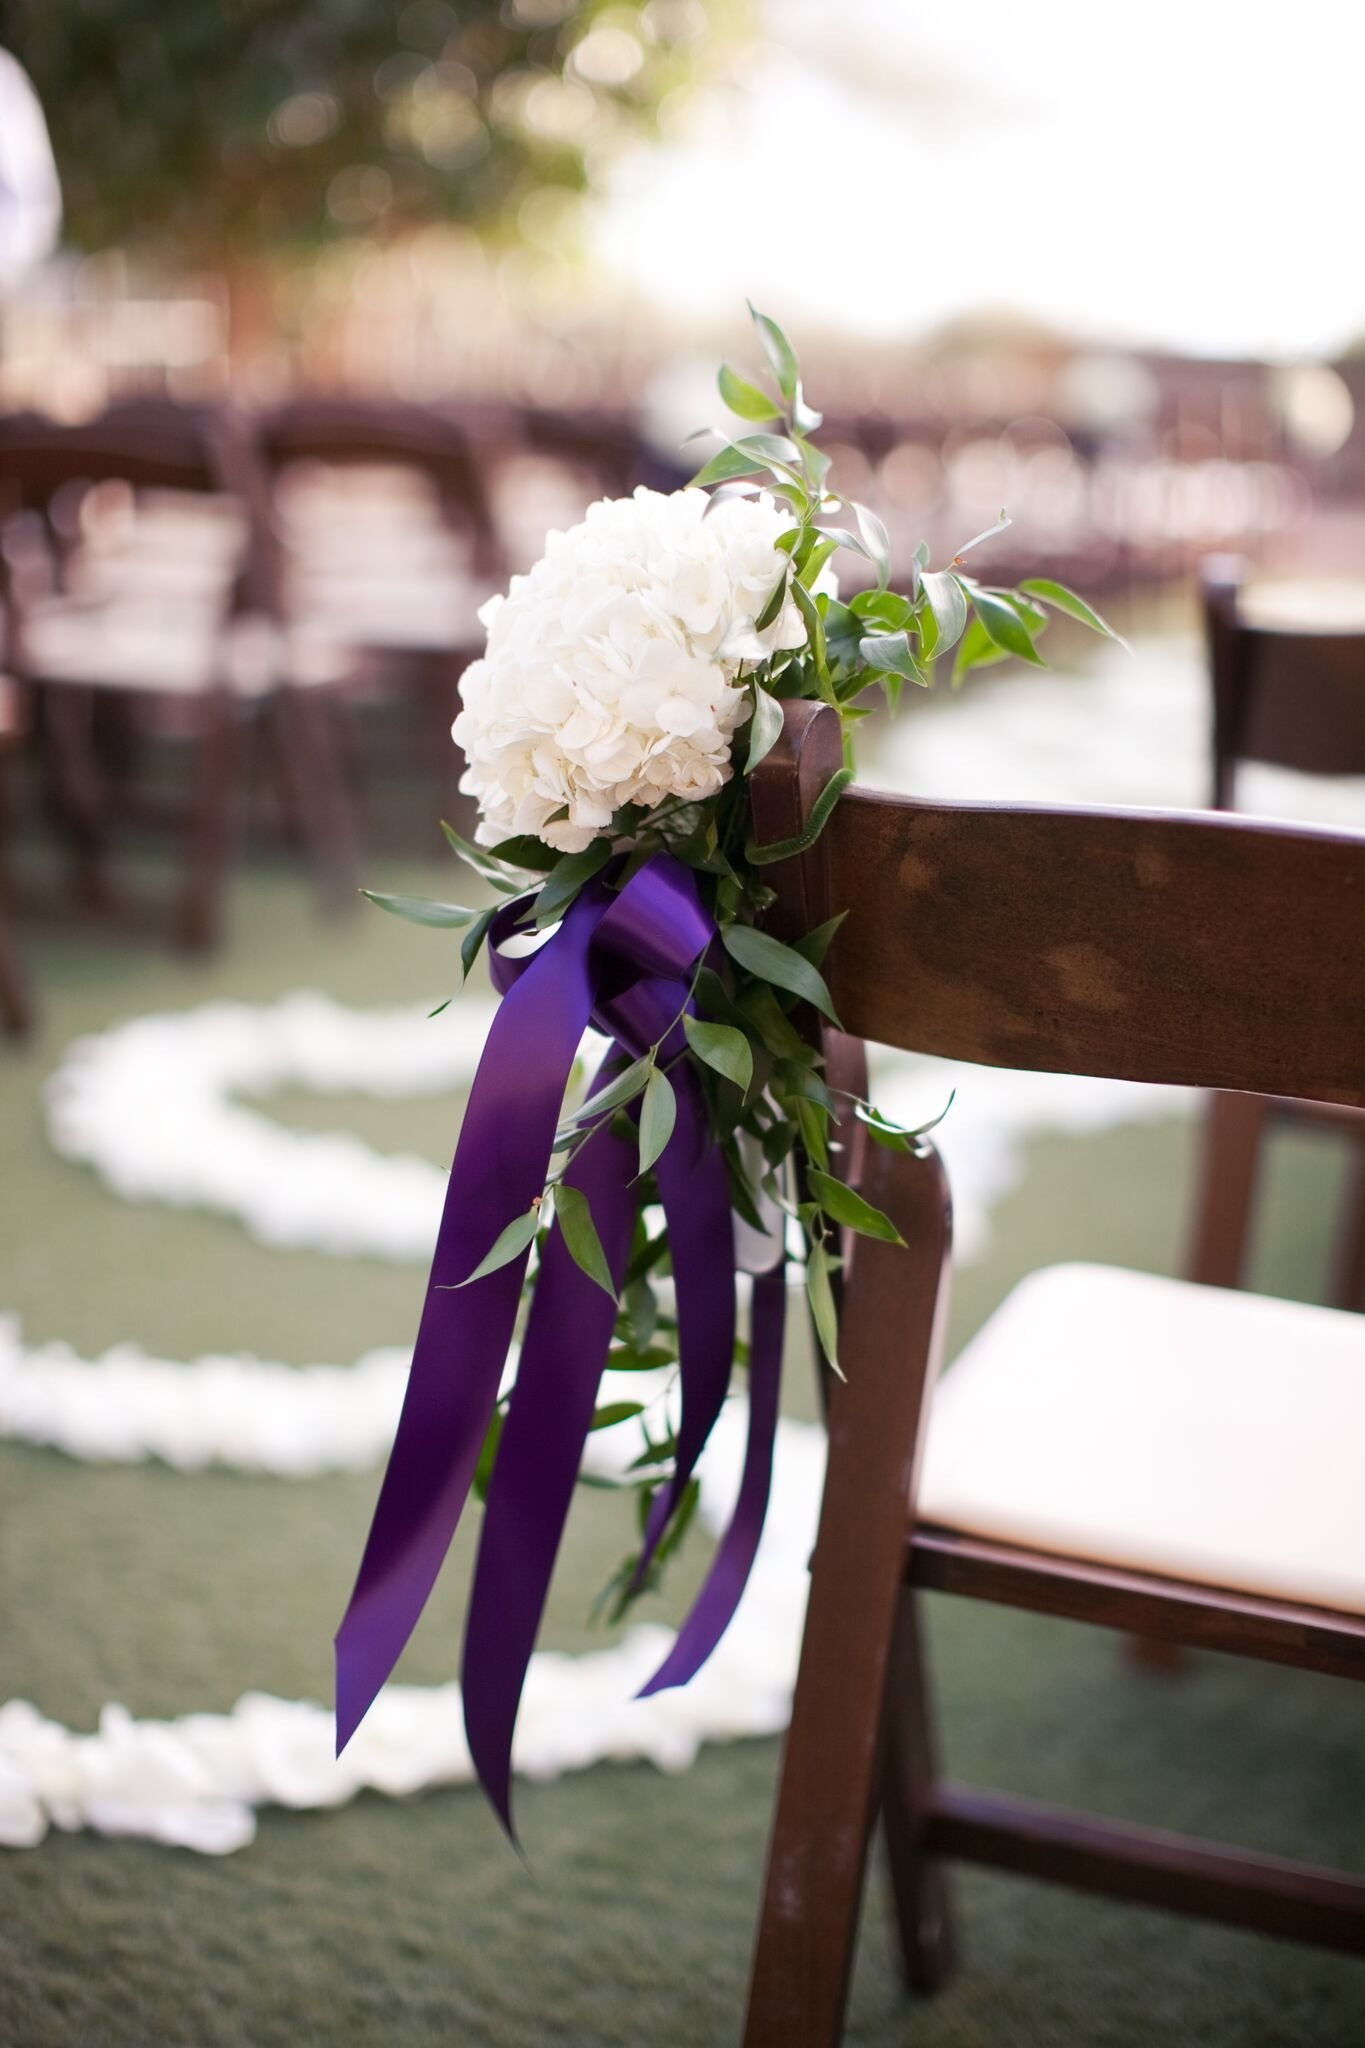 Your-Event-Florist-Arizona-Wedding-Flowers107